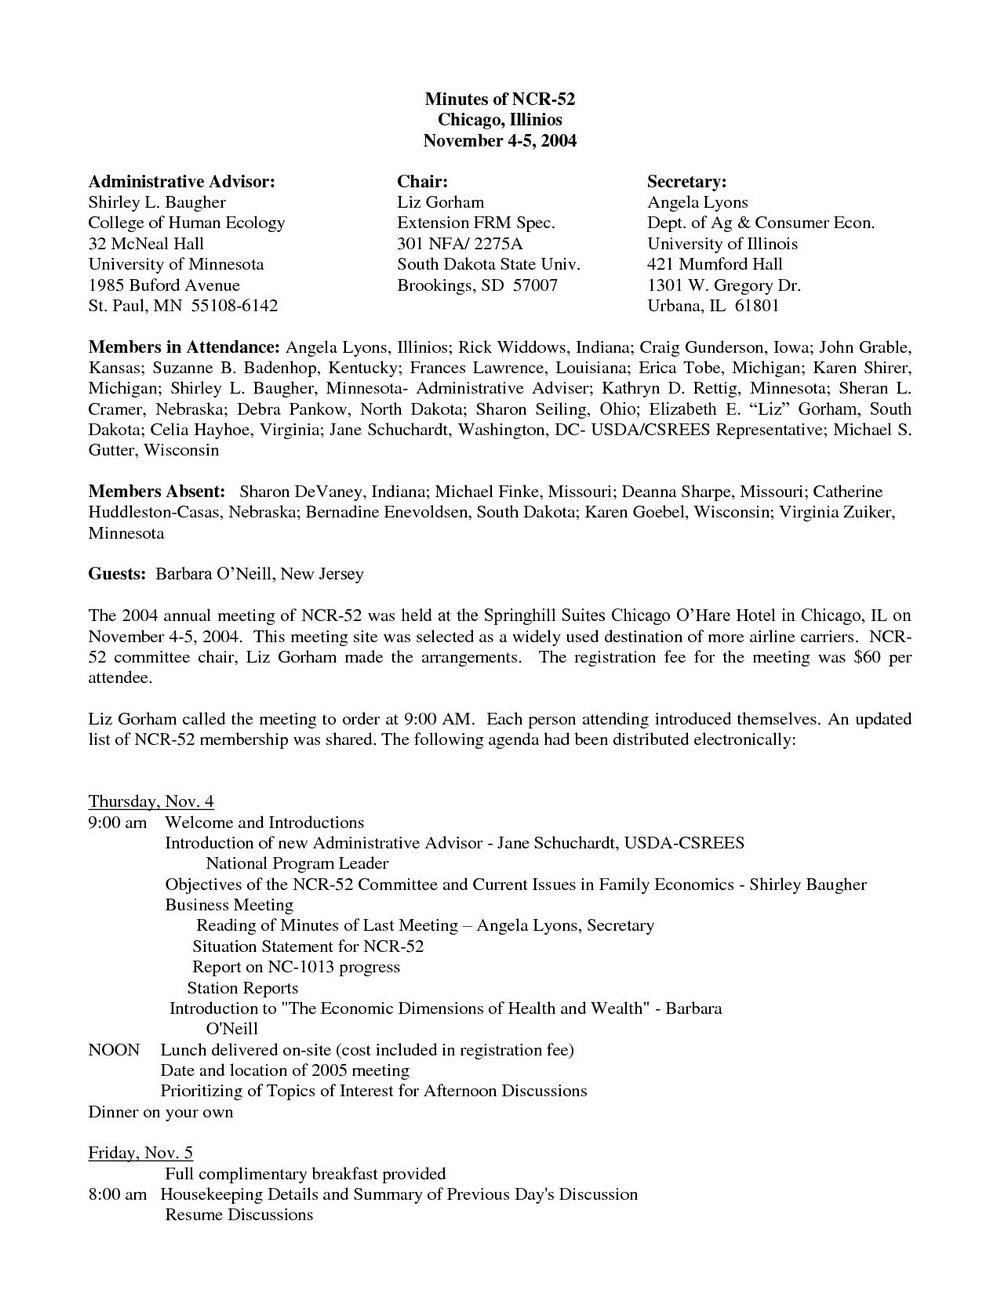 Cover Letter For Live In Caregiver